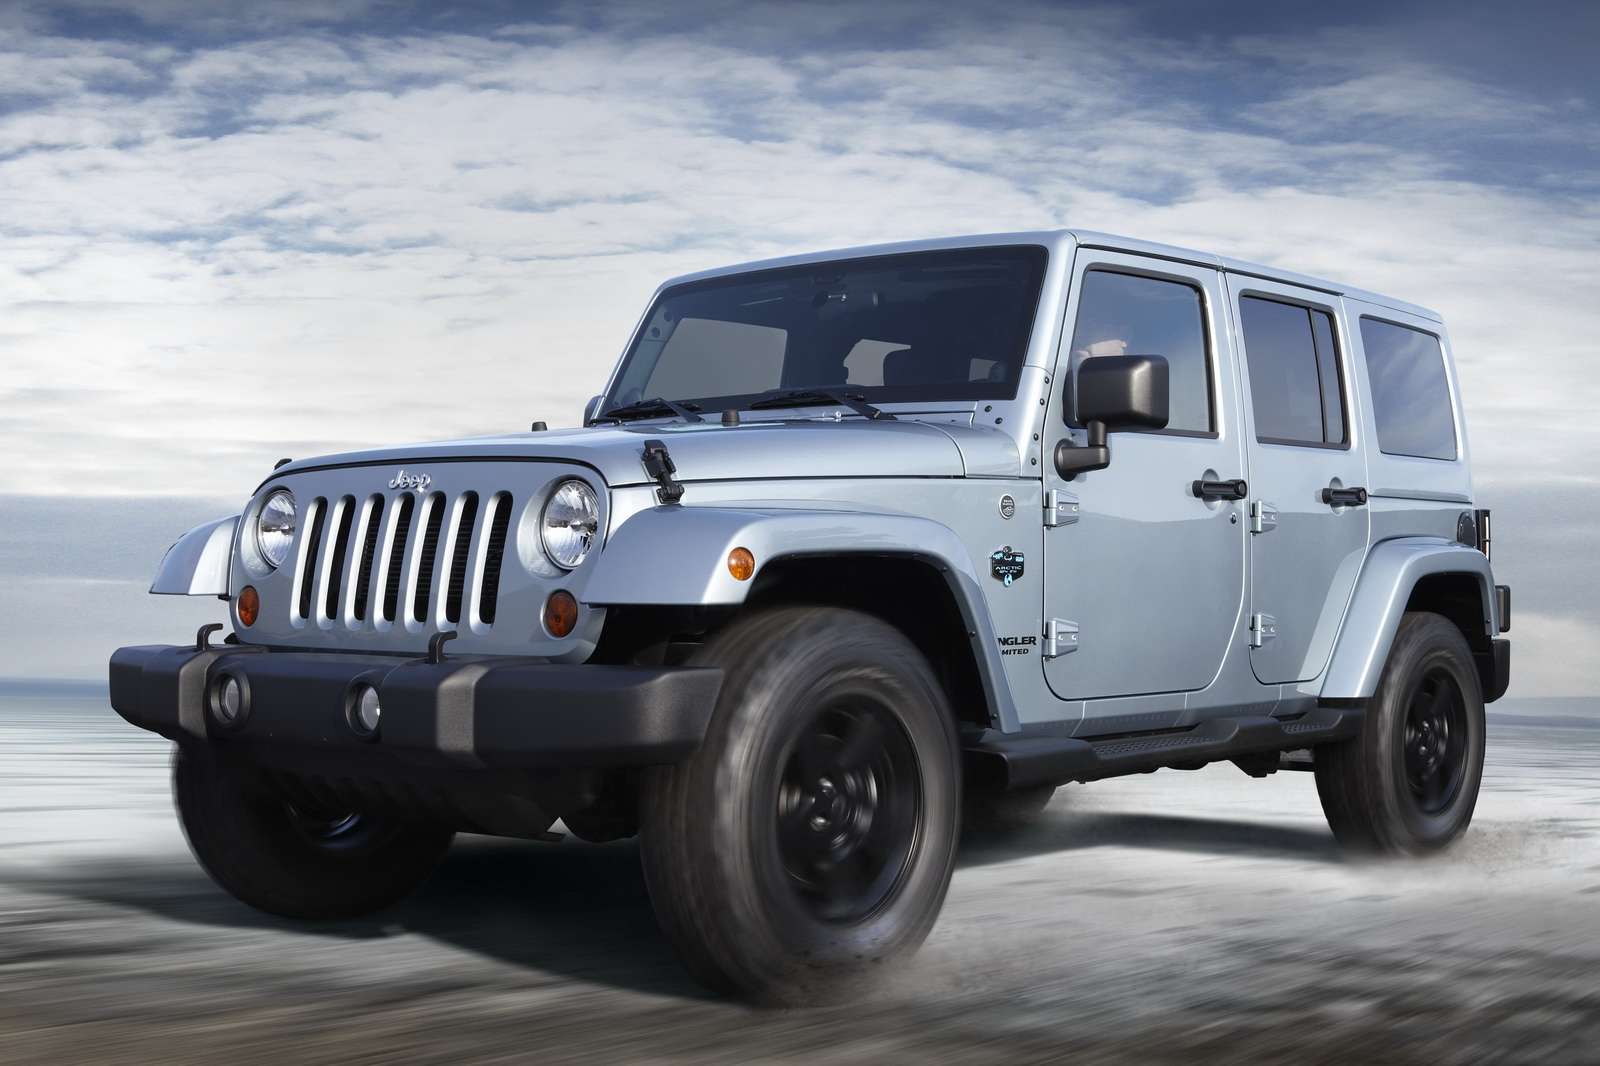 2012 Jeep Wrangler 2 2012 Jeep Wrangler and Liberty SUV Arctic Specials   A Review